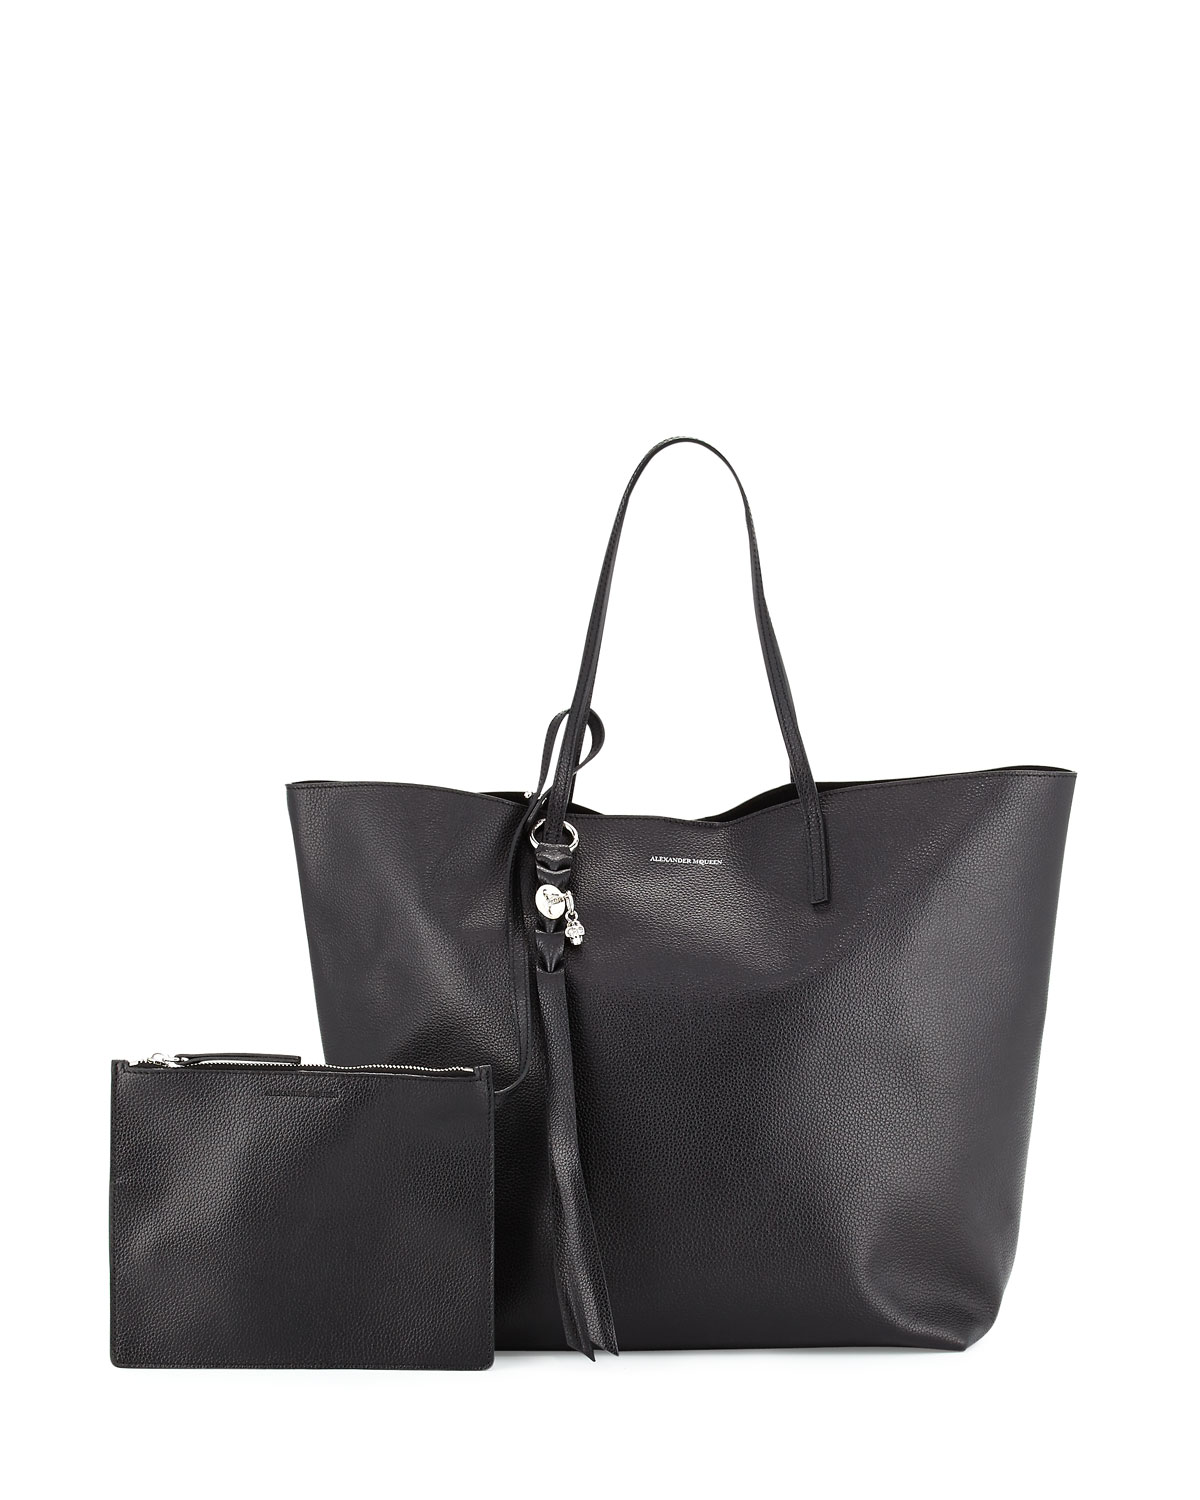 8240a96ec5df Alexander McQueen Skull Open Leather Shopper Tote Bag